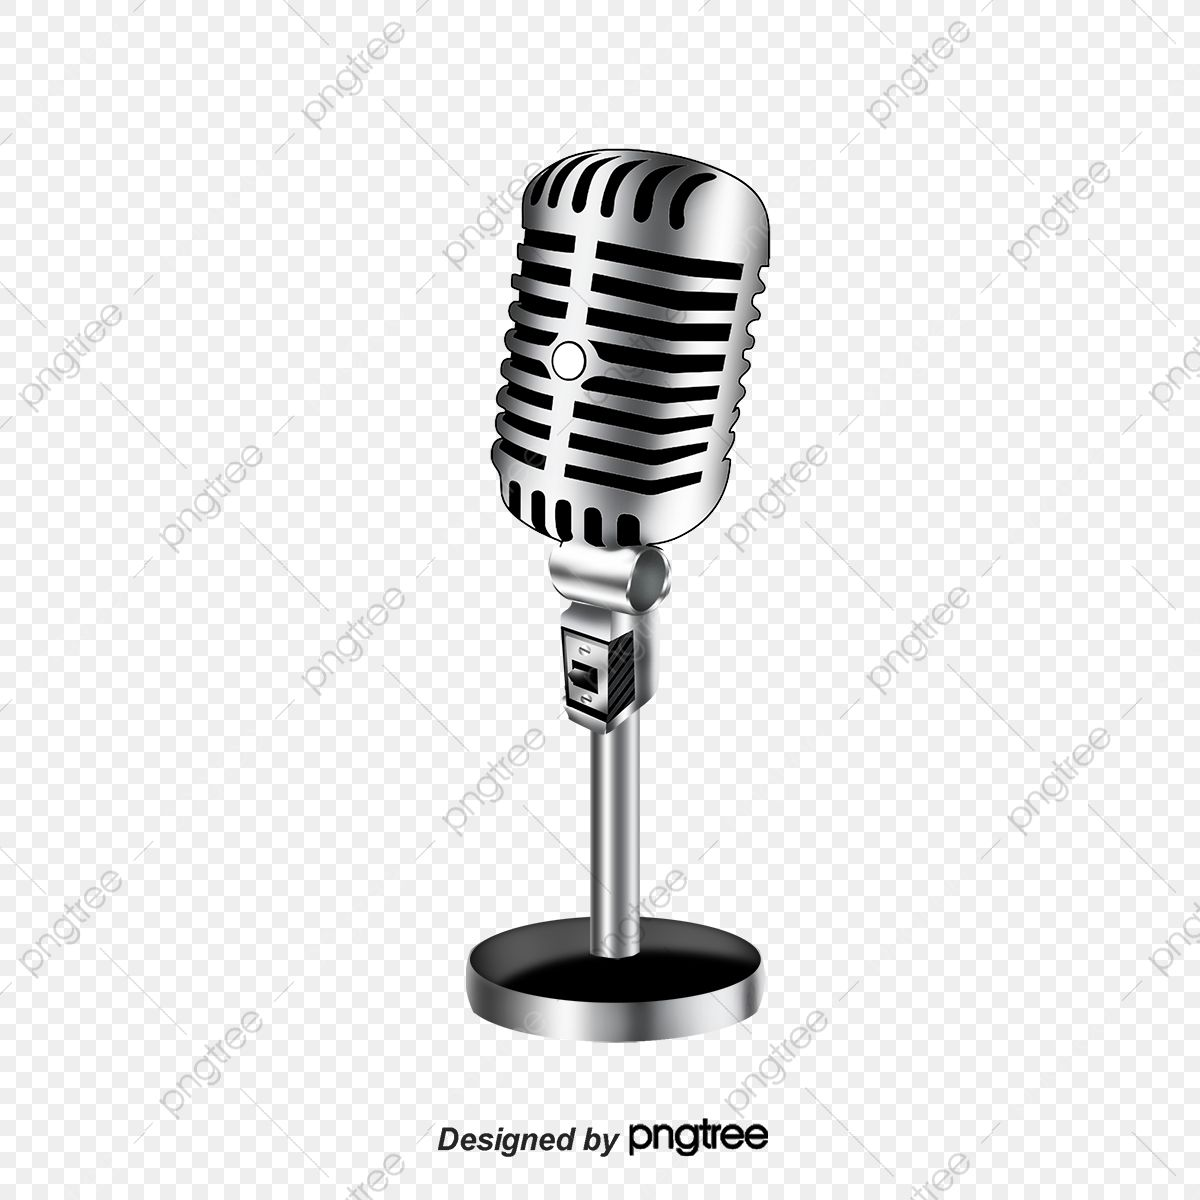 Cartoon Microphone Cartoon Microphone Gold Microphone Png Transparent Clipart Image And Psd File For Free Download Microphone Clip Art Cartoon